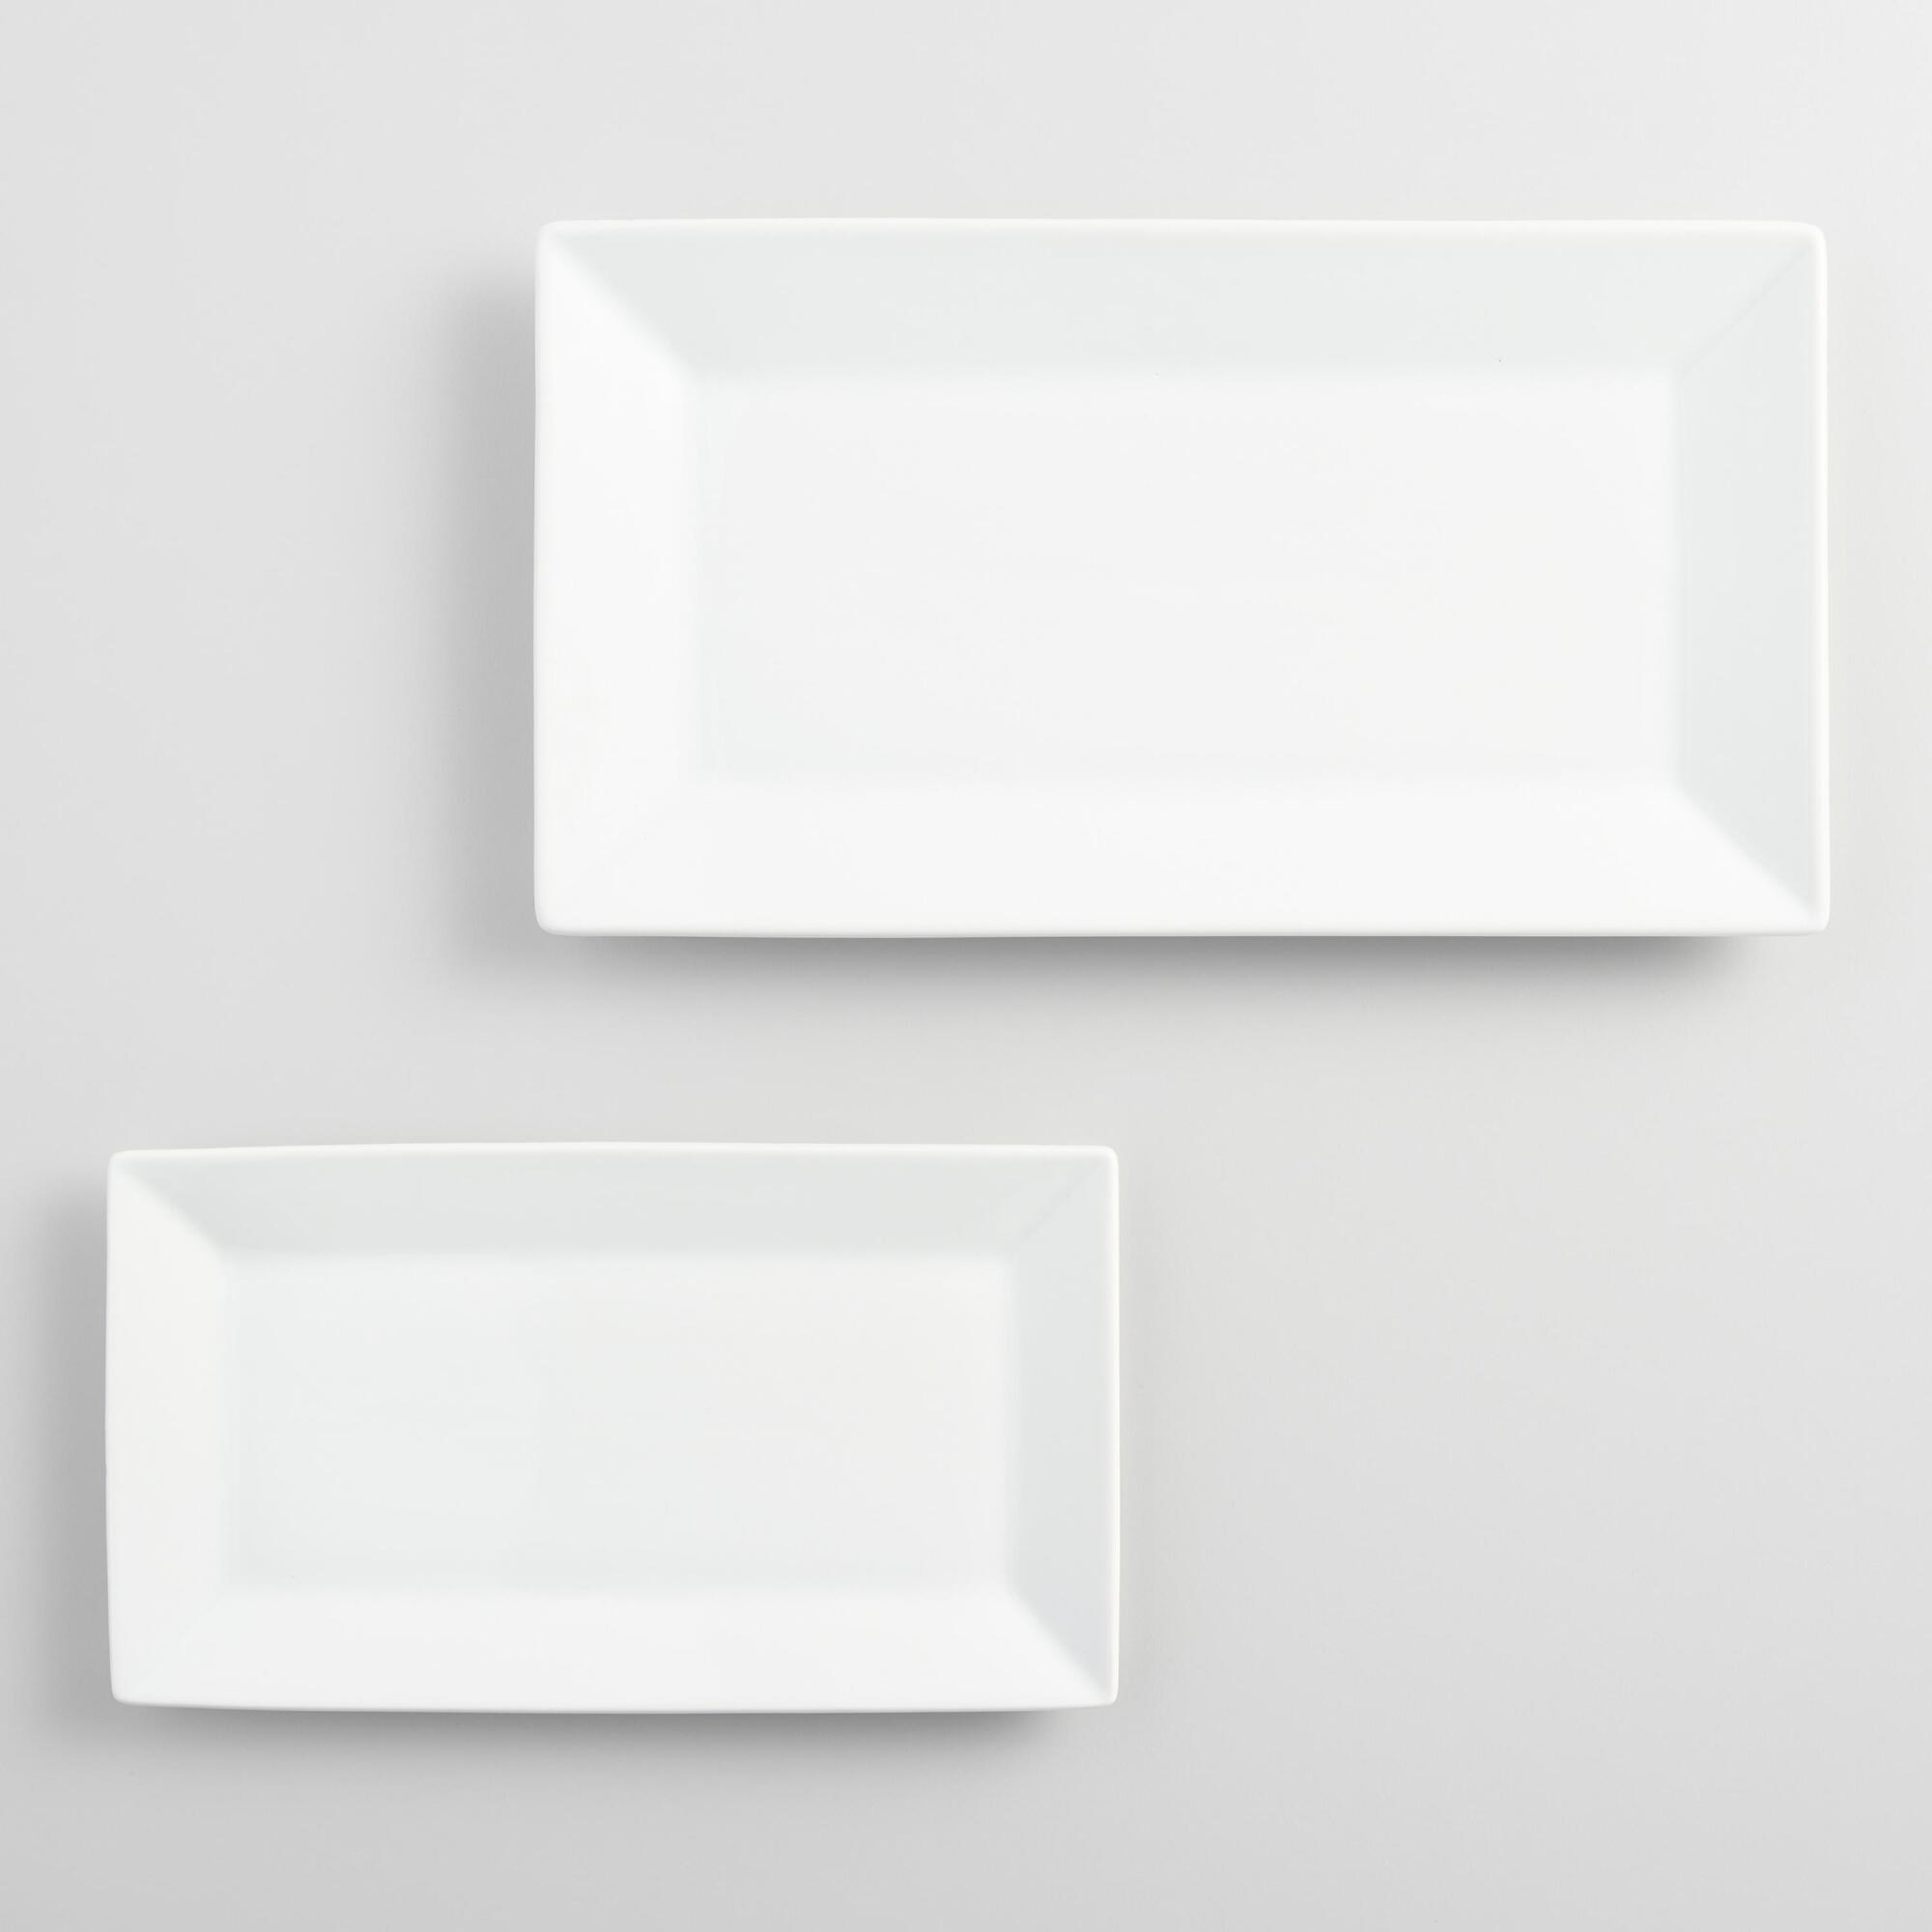 White Rimmed Rectangle Platters - Porcelain - Small by World Market Small